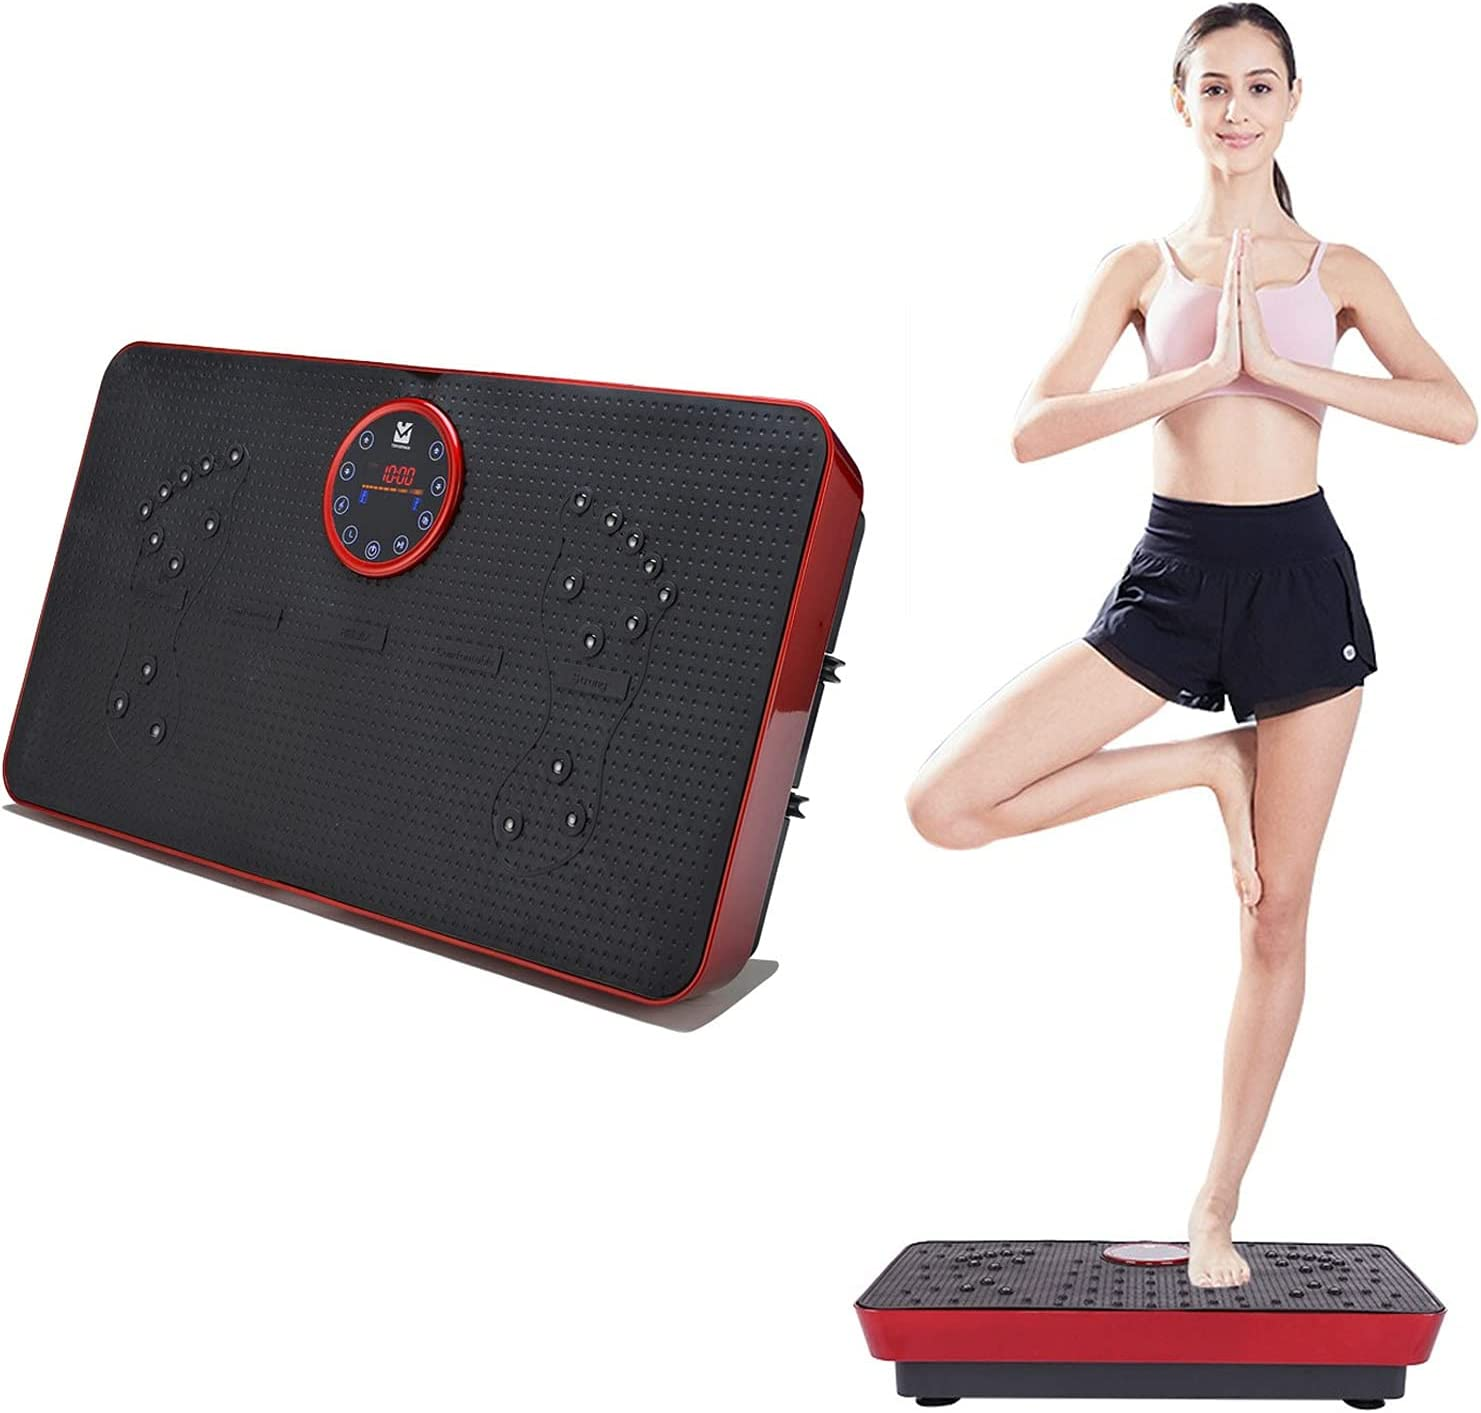 Max 82% OFF DSVF Vibration Max 61% OFF Plate Exercise B Body - Machine